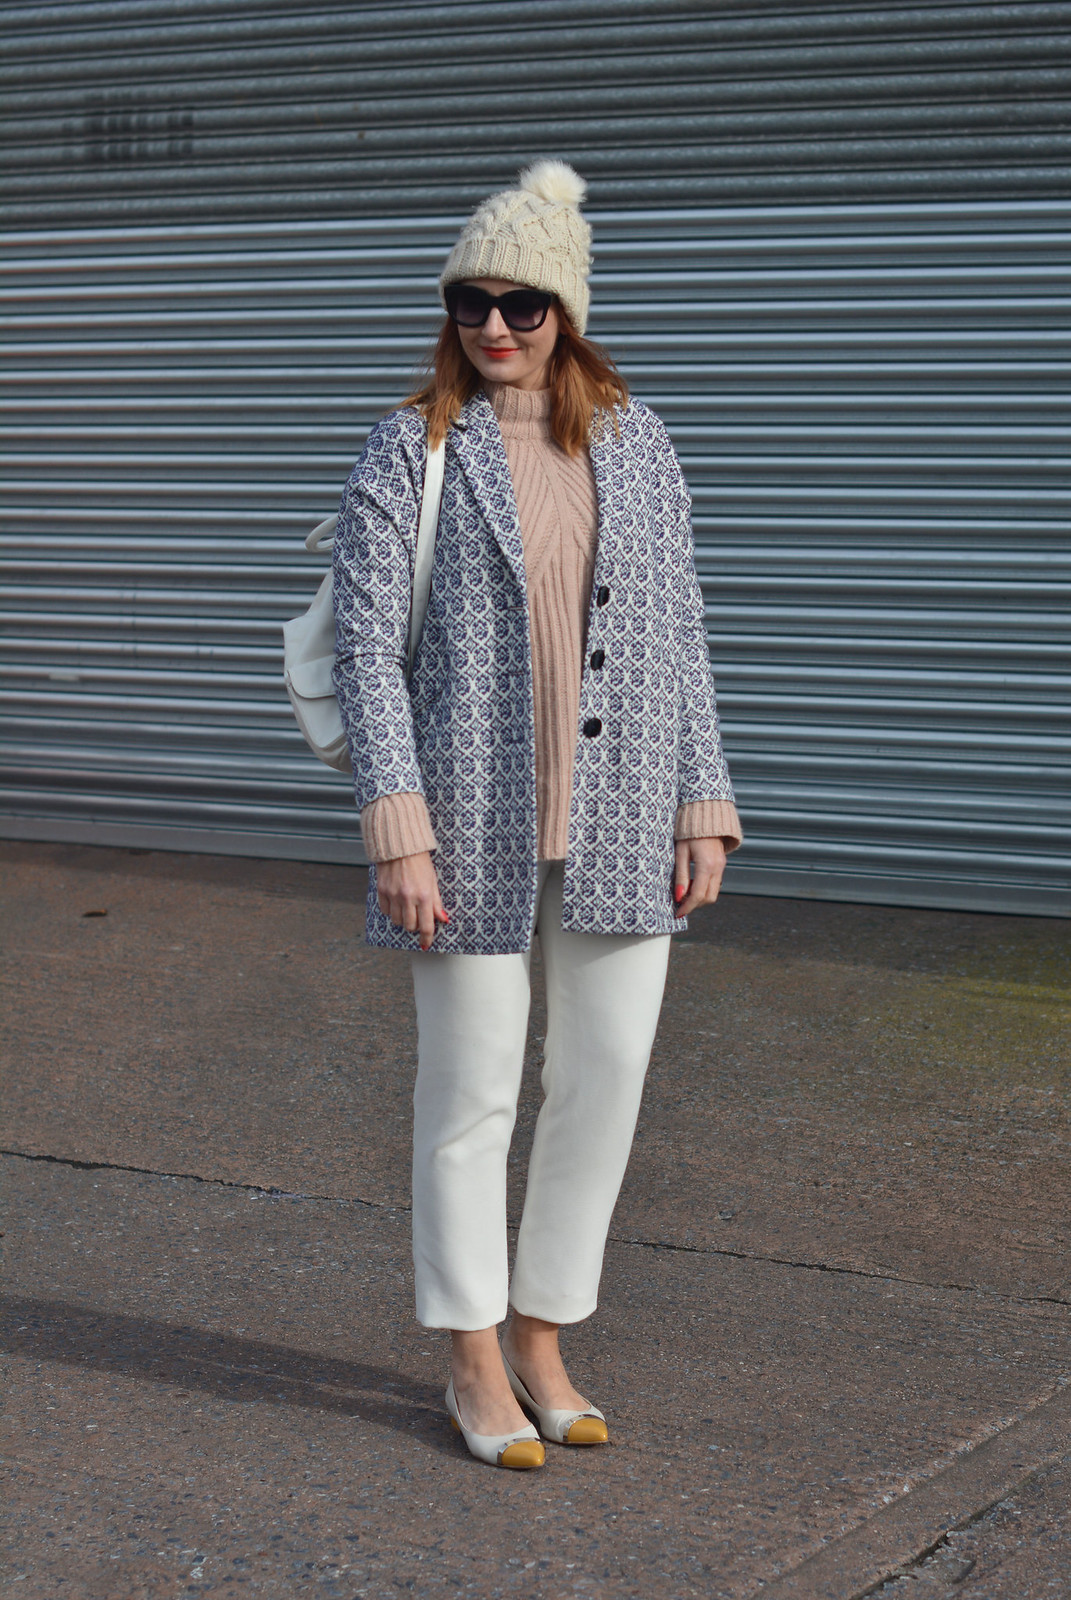 Blush pink, white and blue jaquard winter layers   Not Dressed As Lamb